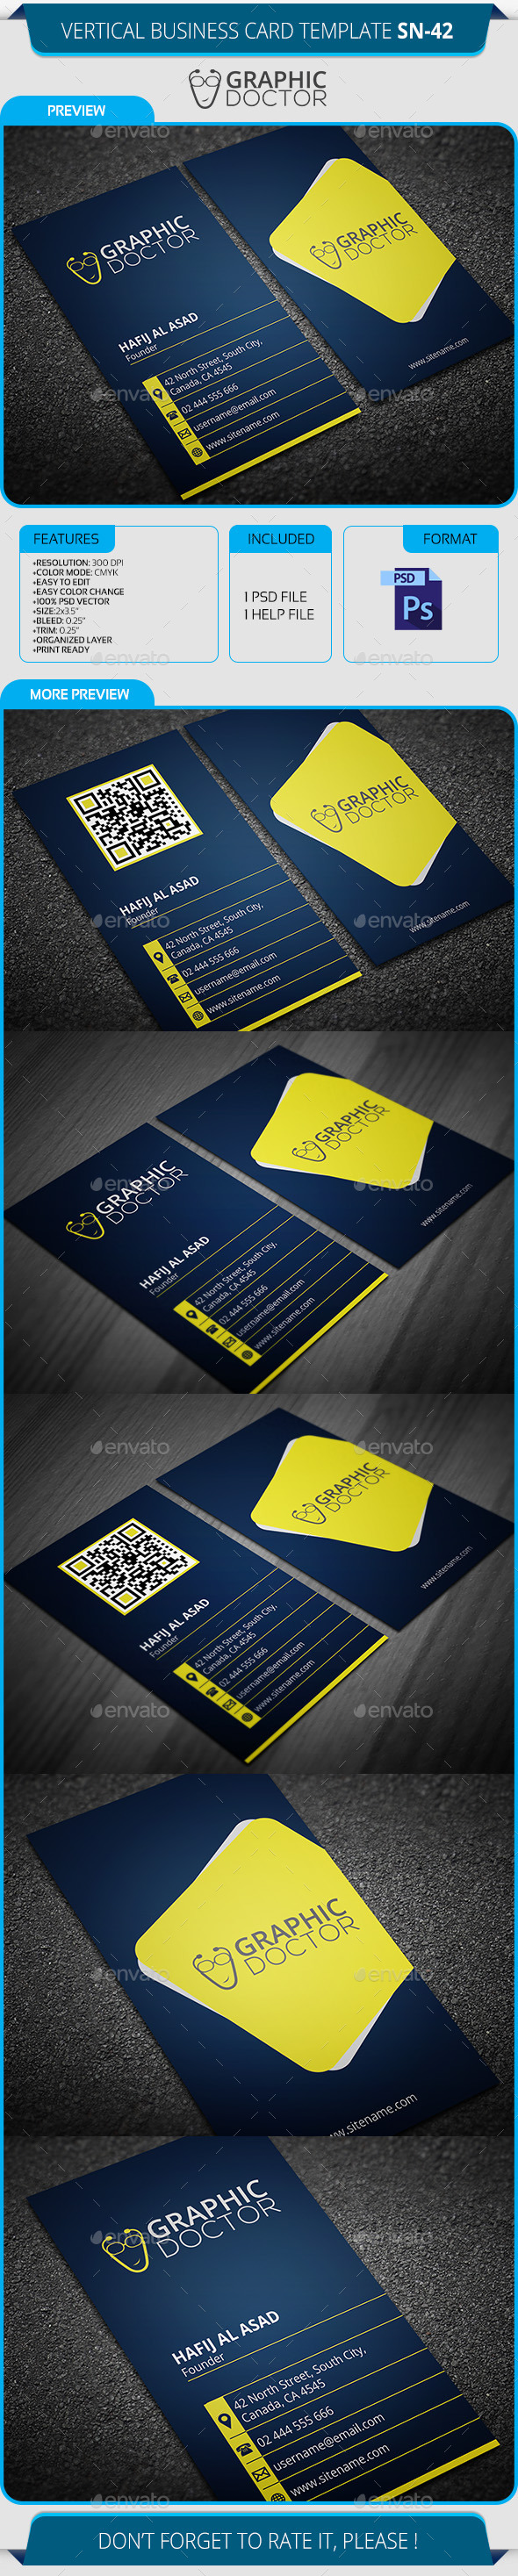 Vertical Business Card Template SN-42 - Creative Business Cards